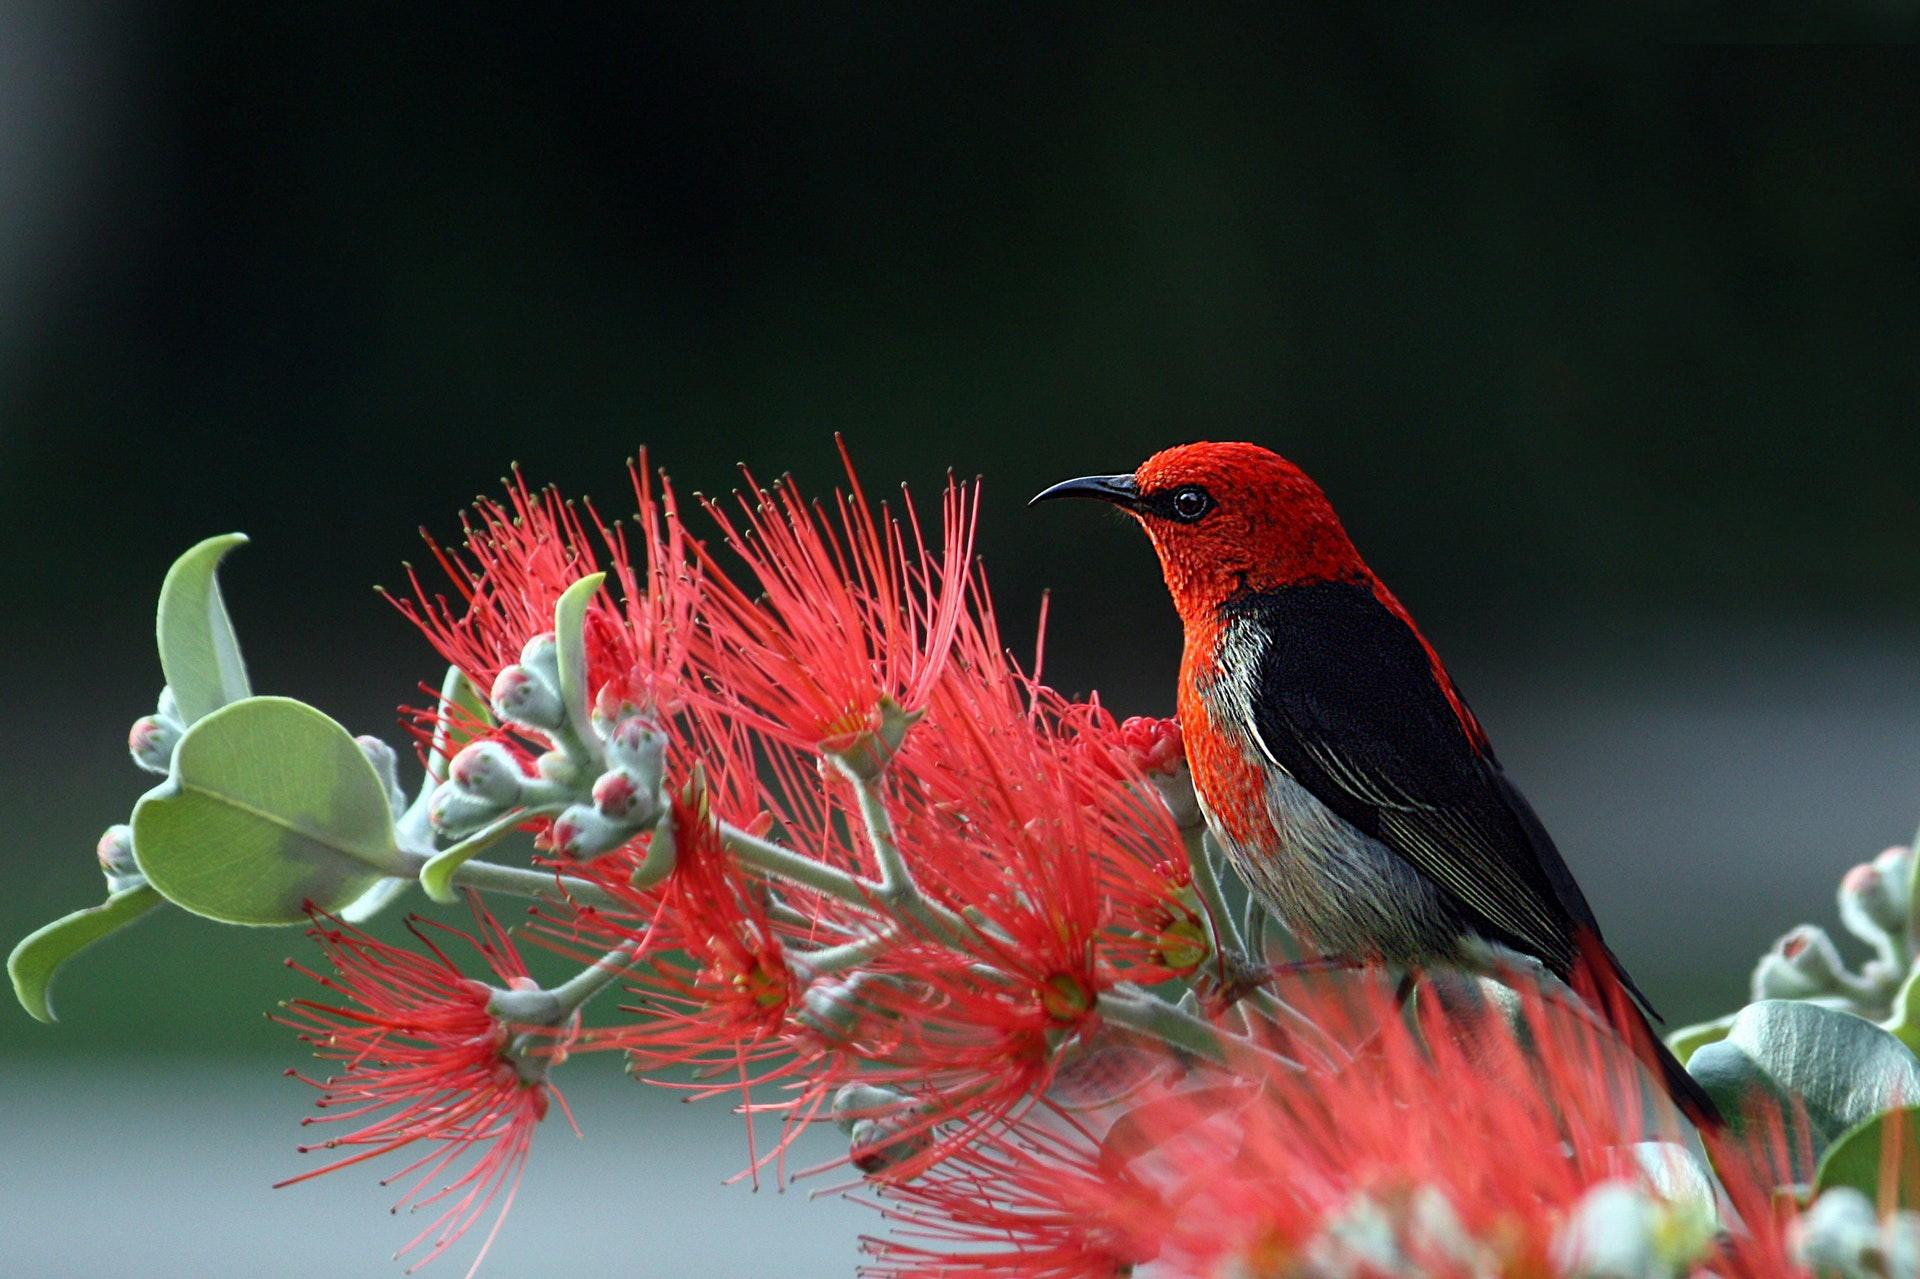 Tips on Photographing Wild Birds